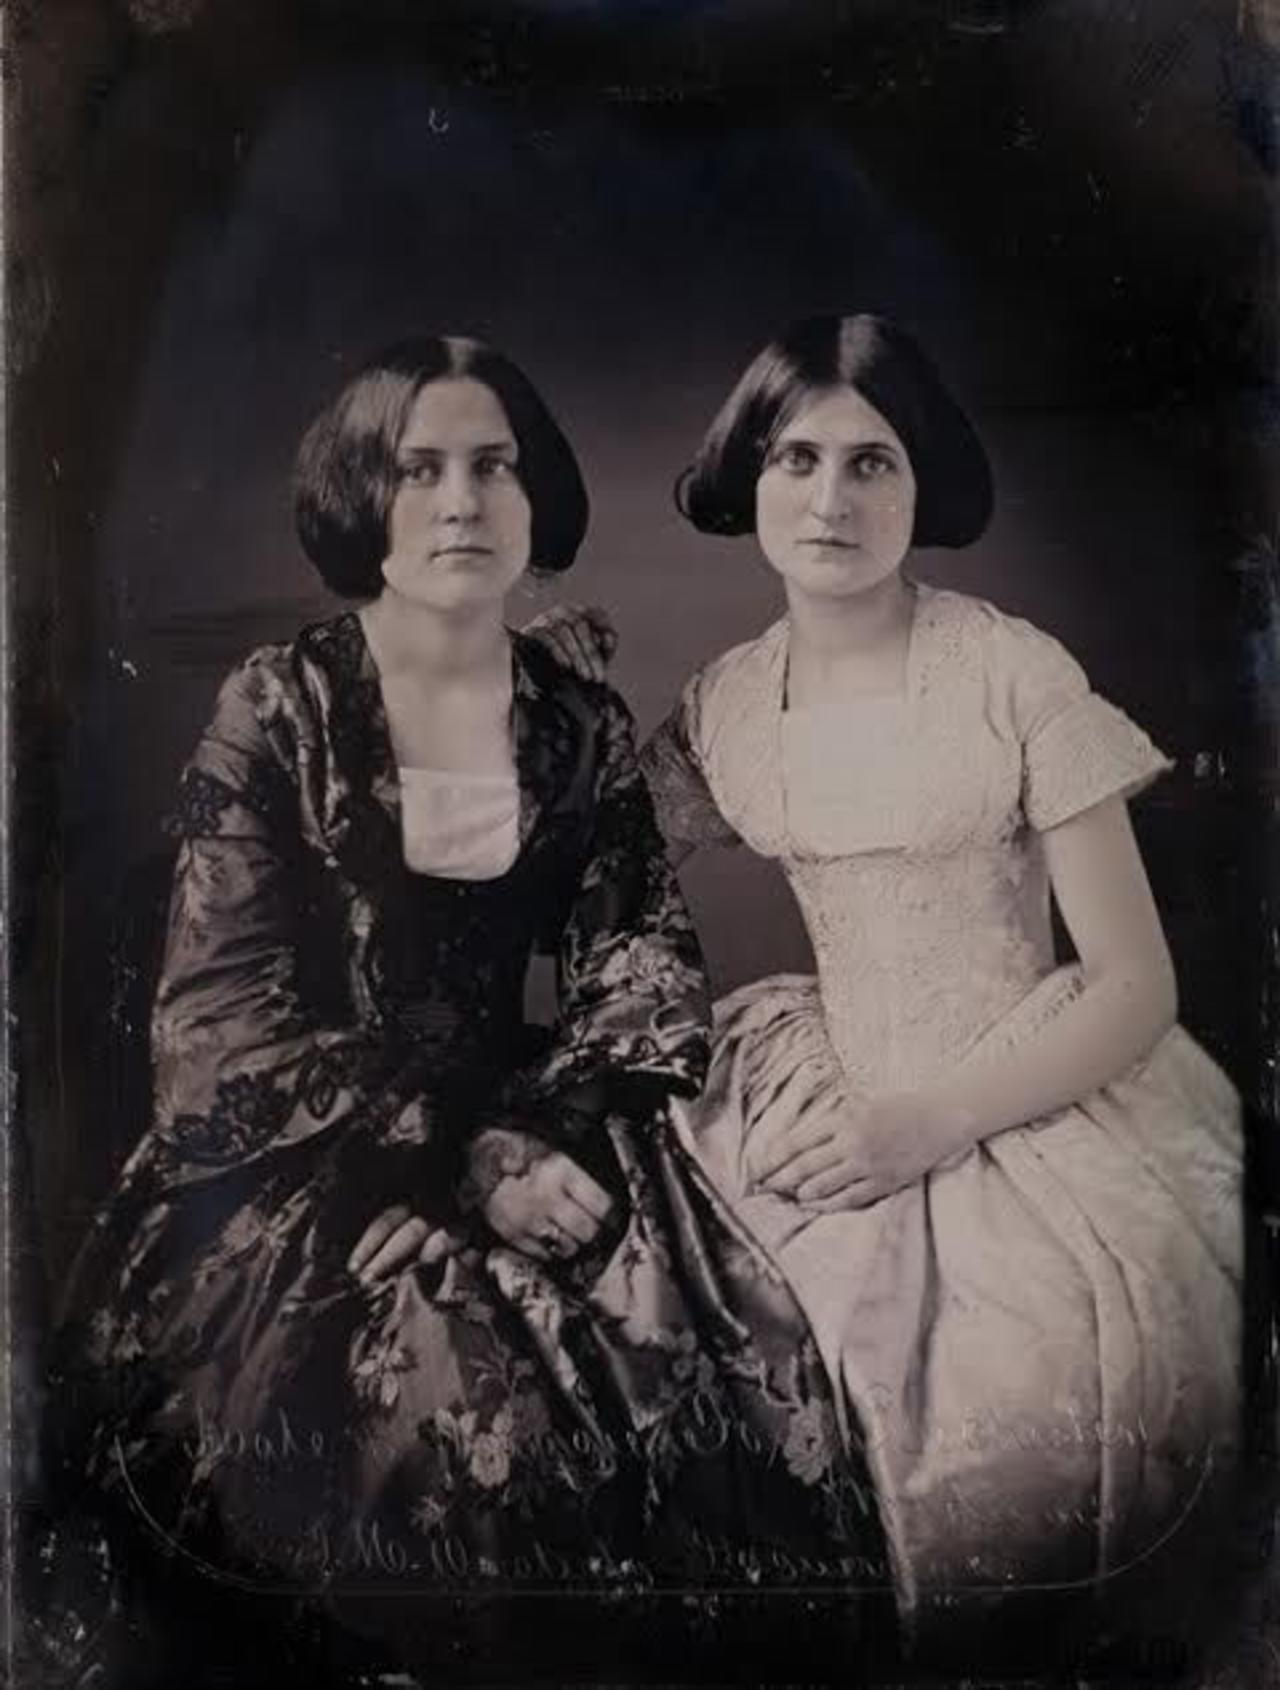 Maggie (l.) and Kate (r.) Fox. Daguerreotype by Thomas H. Easterly.